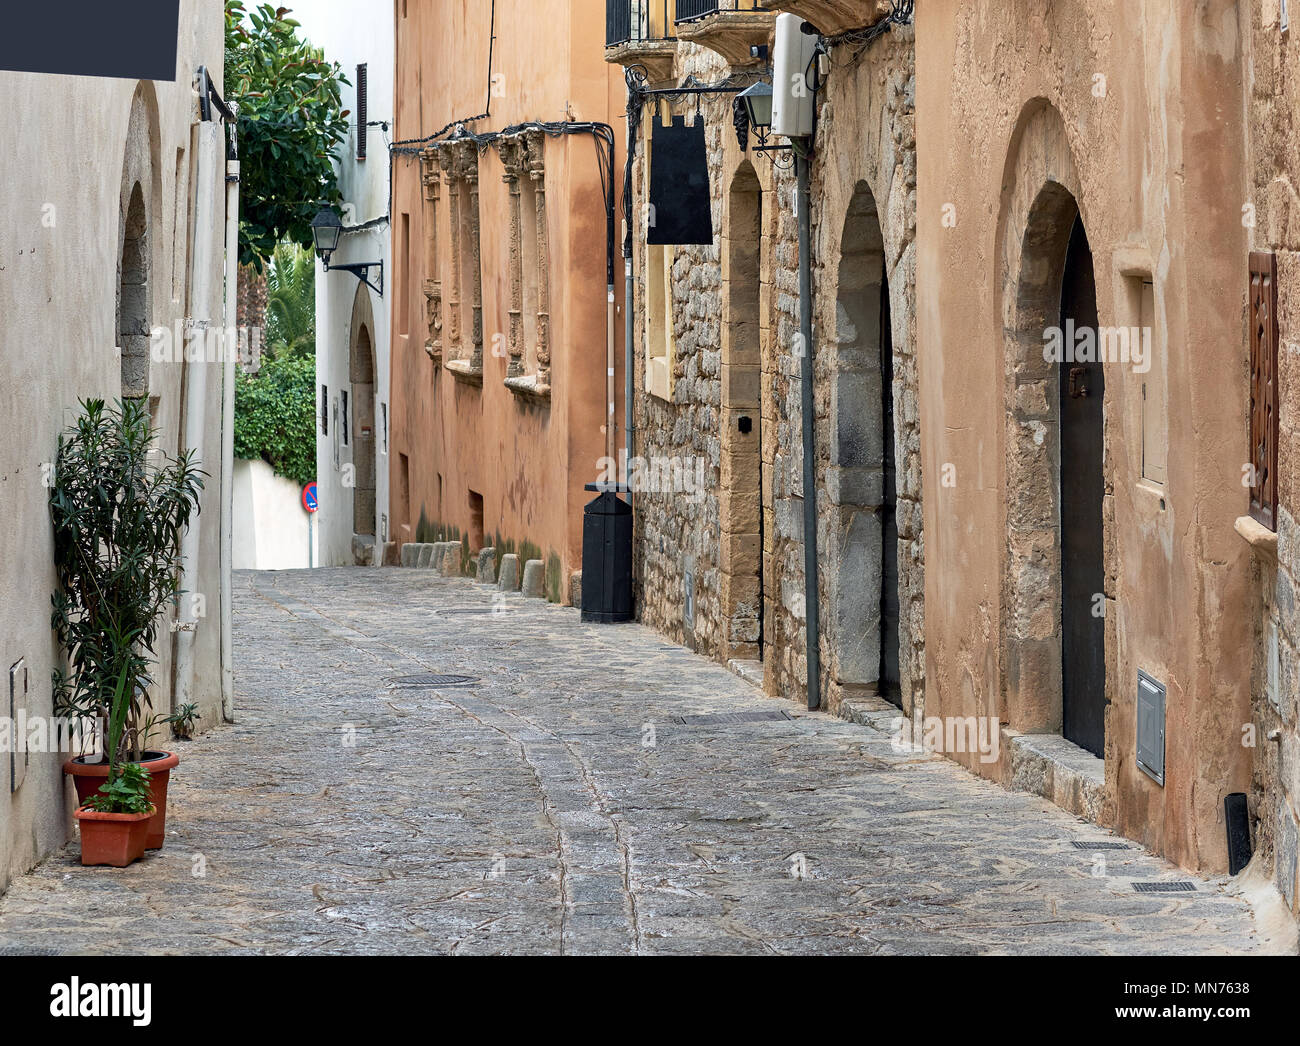 Charming empty cobblestone street of old town of Ibiza (Eivissa), Balearic Islands. Spain - Stock Image